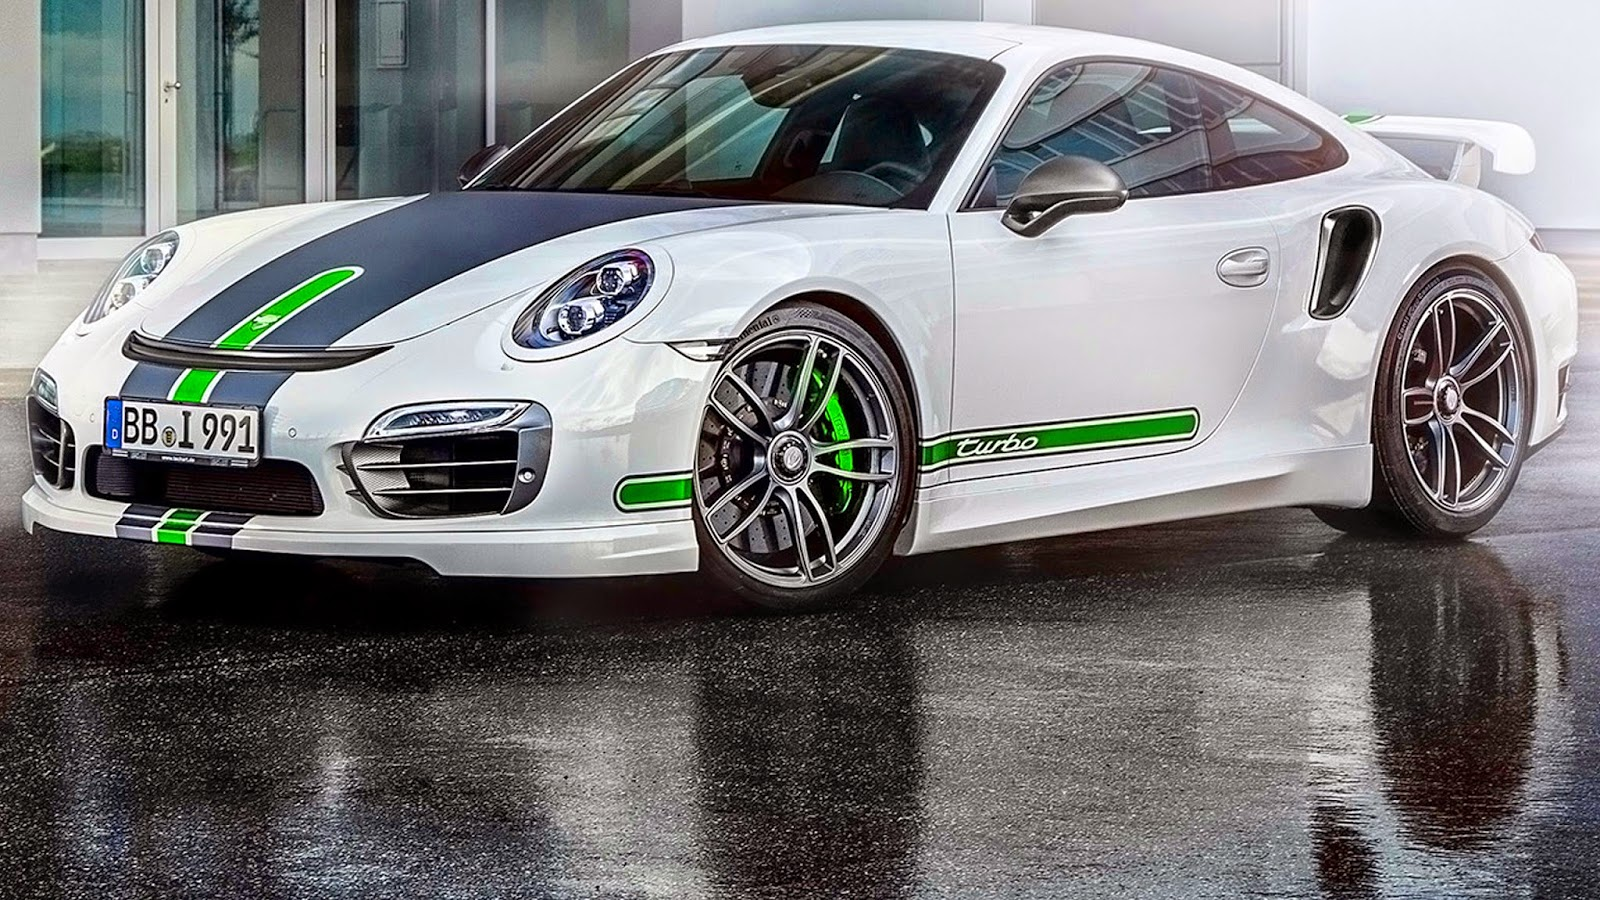 With Immediate Effect Techart Performance Upgrades For The Porsche 911 Models Type 991 Remain Not Only Reserved